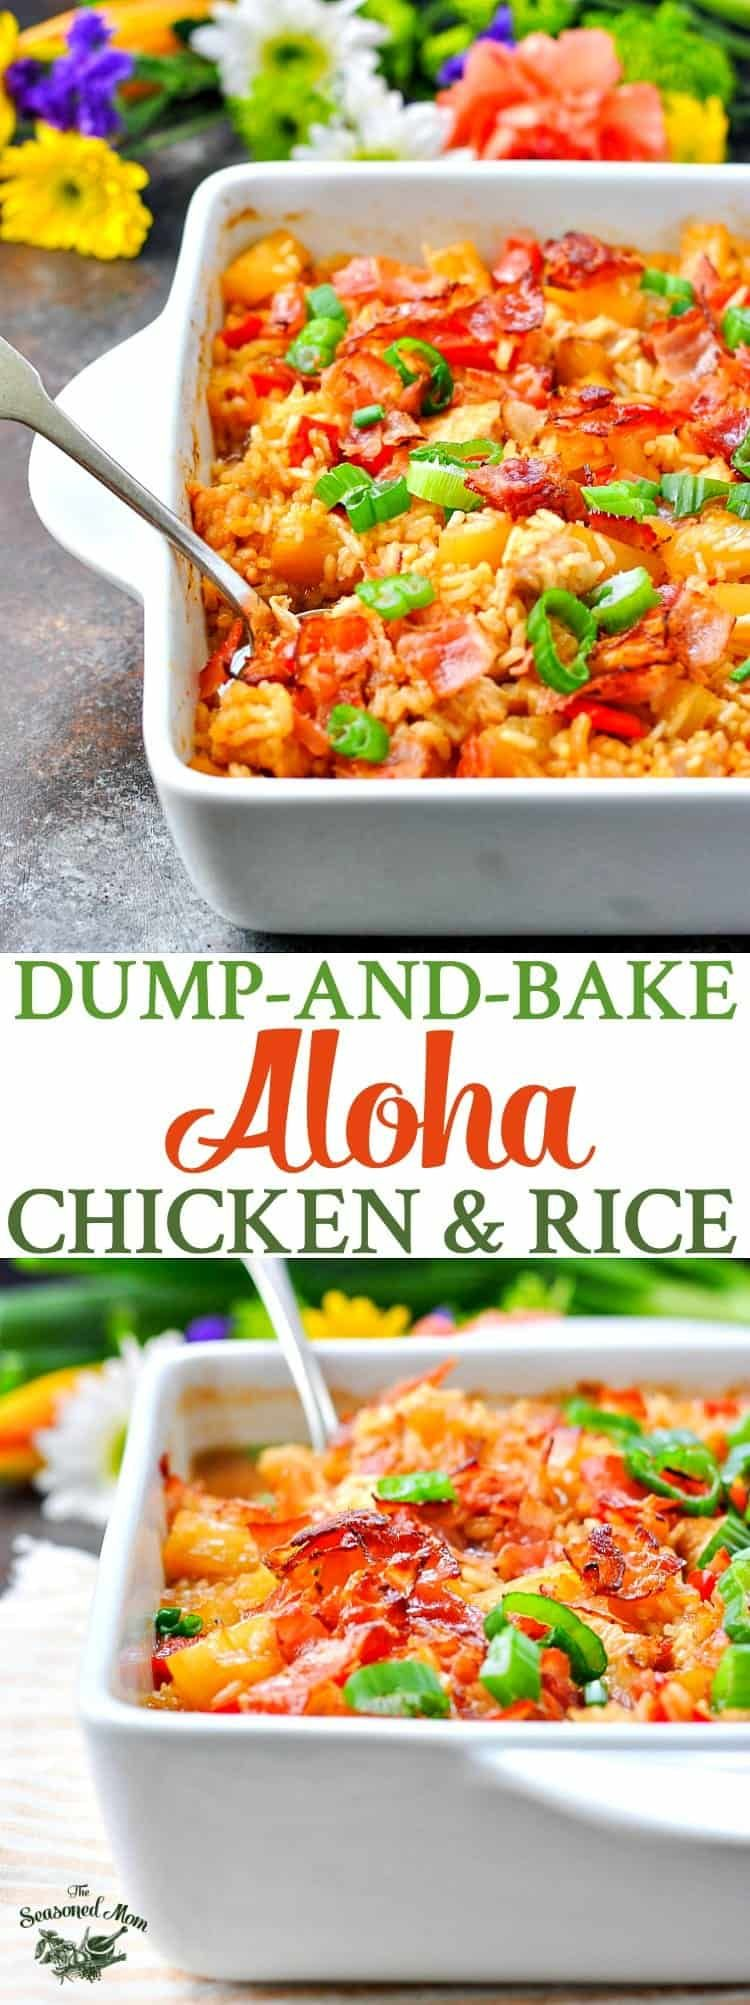 Dump-and-Bake Aloha Chicken and Rice #seasonedricerecipes